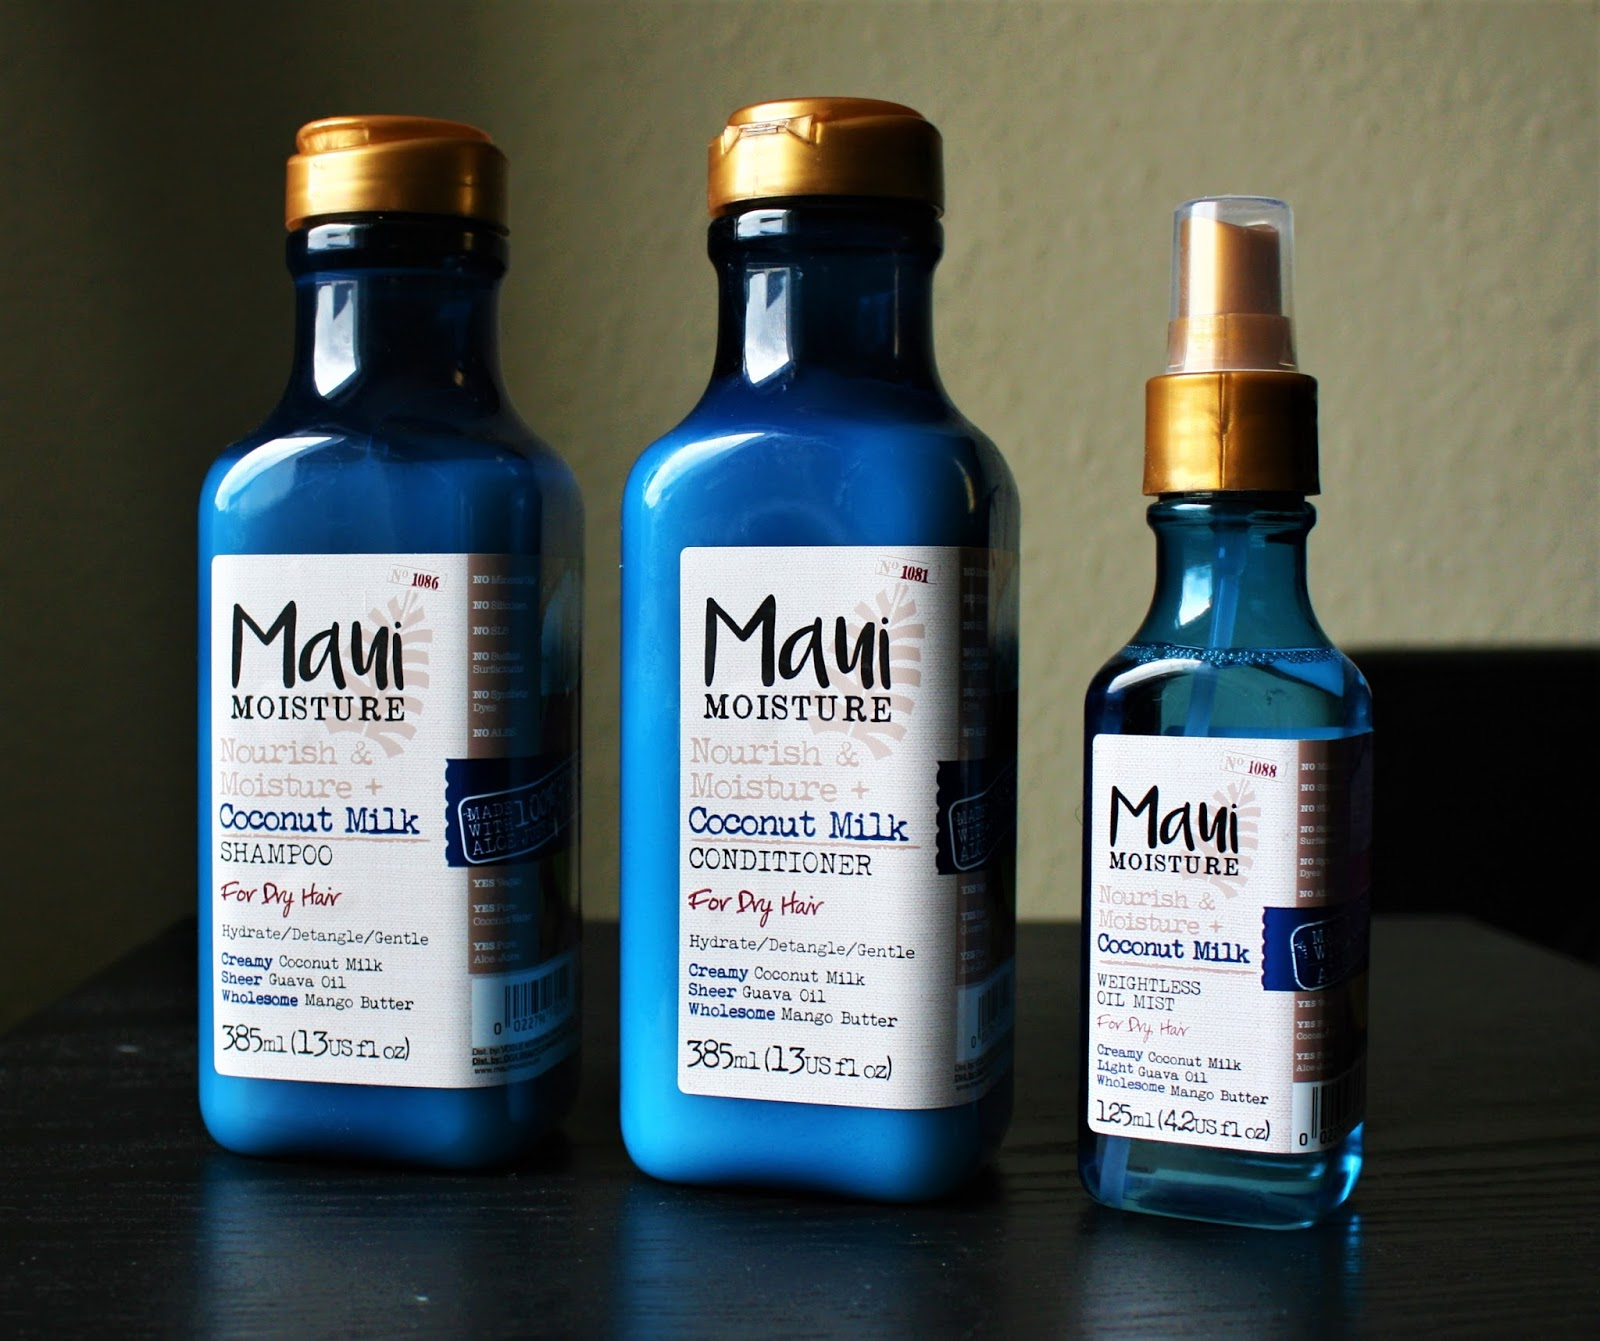 Products: New Maui Moisture Hair Products